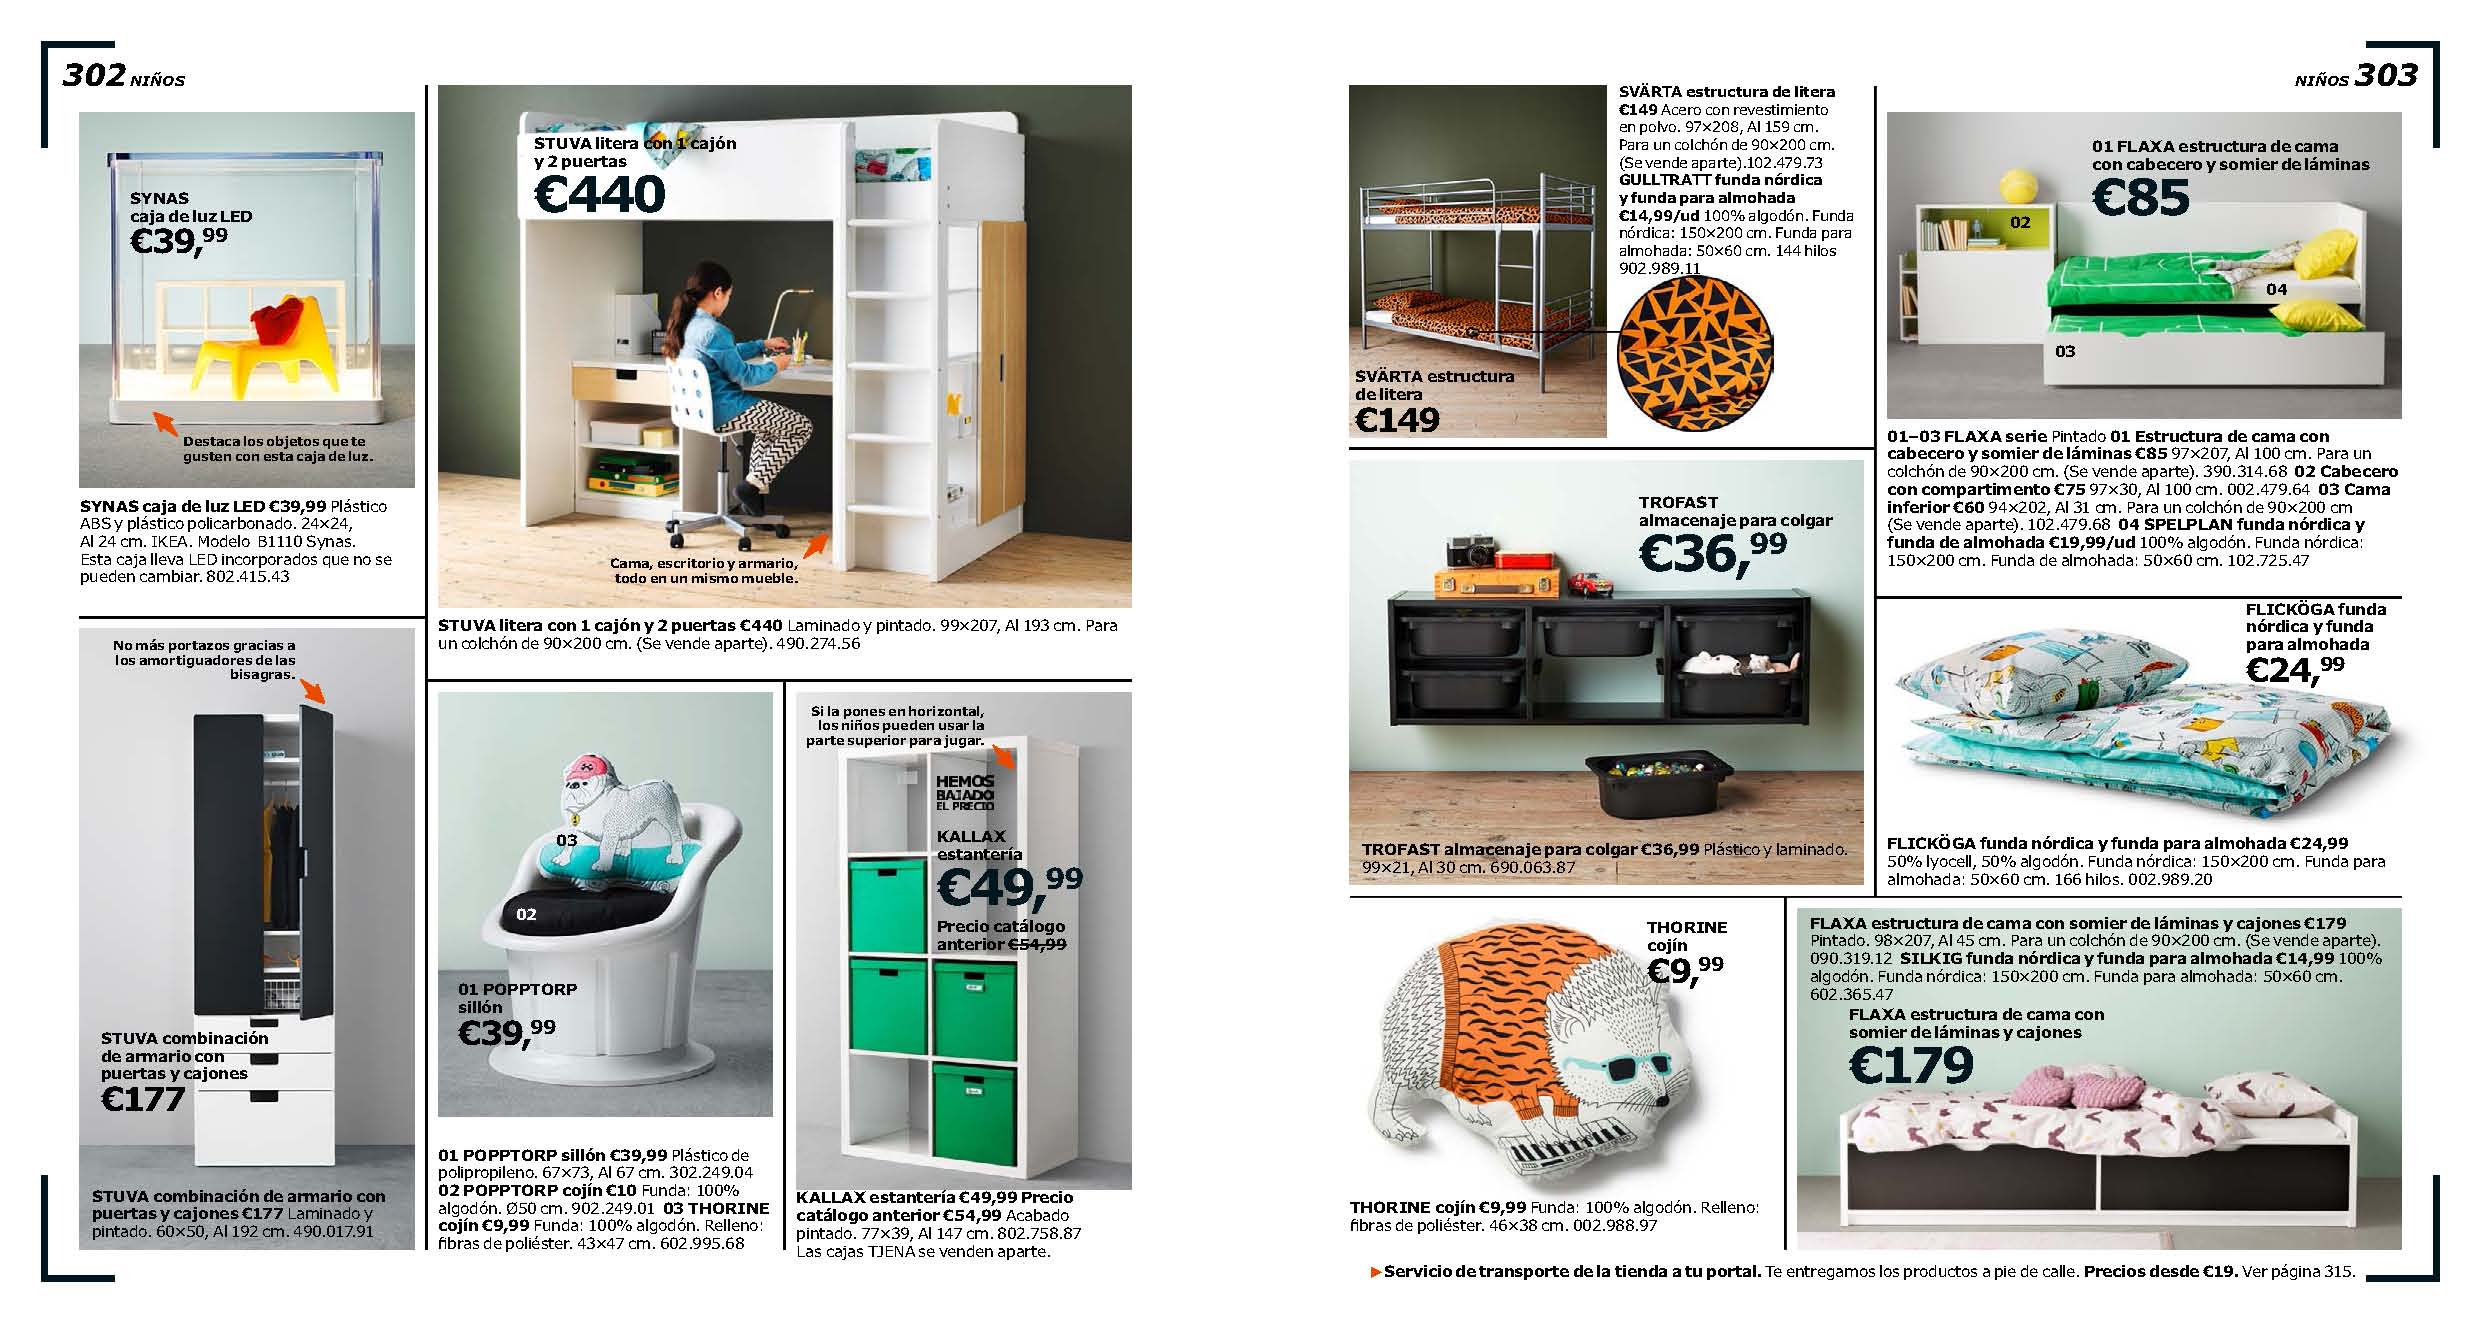 catalogo decorar con ikea 2016 es_Page_152